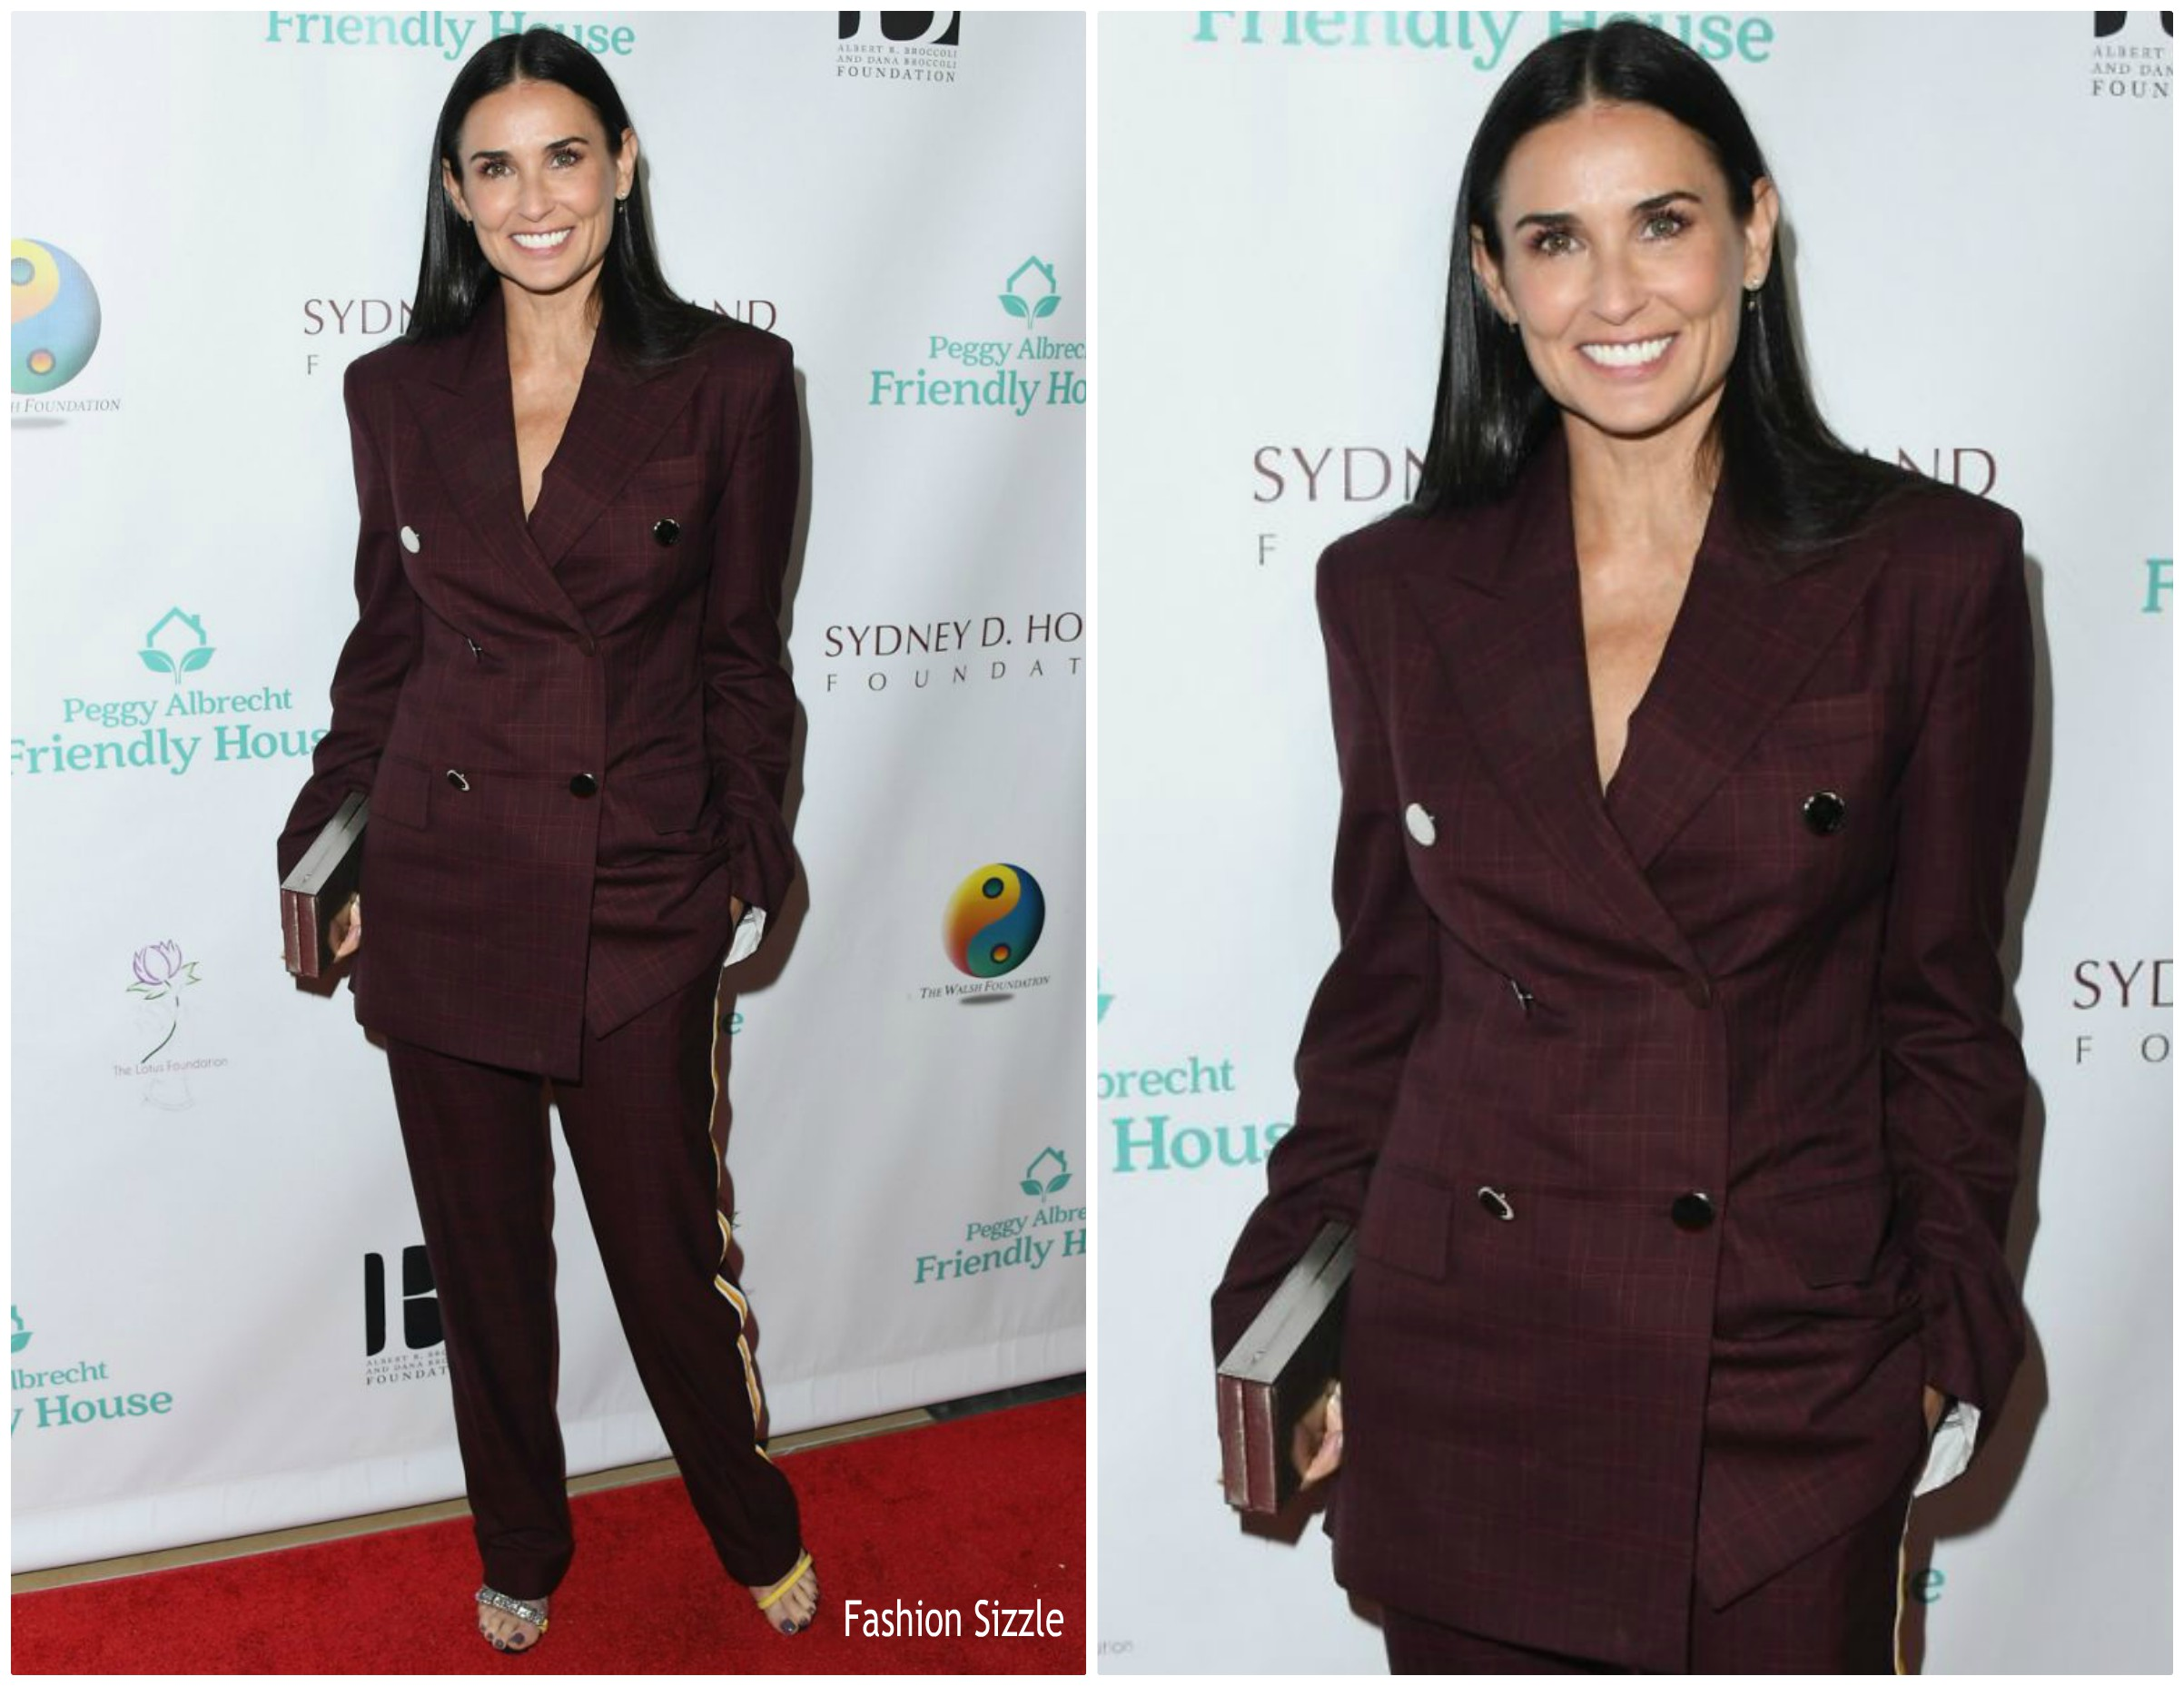 demi-moore-in-calvin-klein-friendly-house-29th-annual-awards-in-la